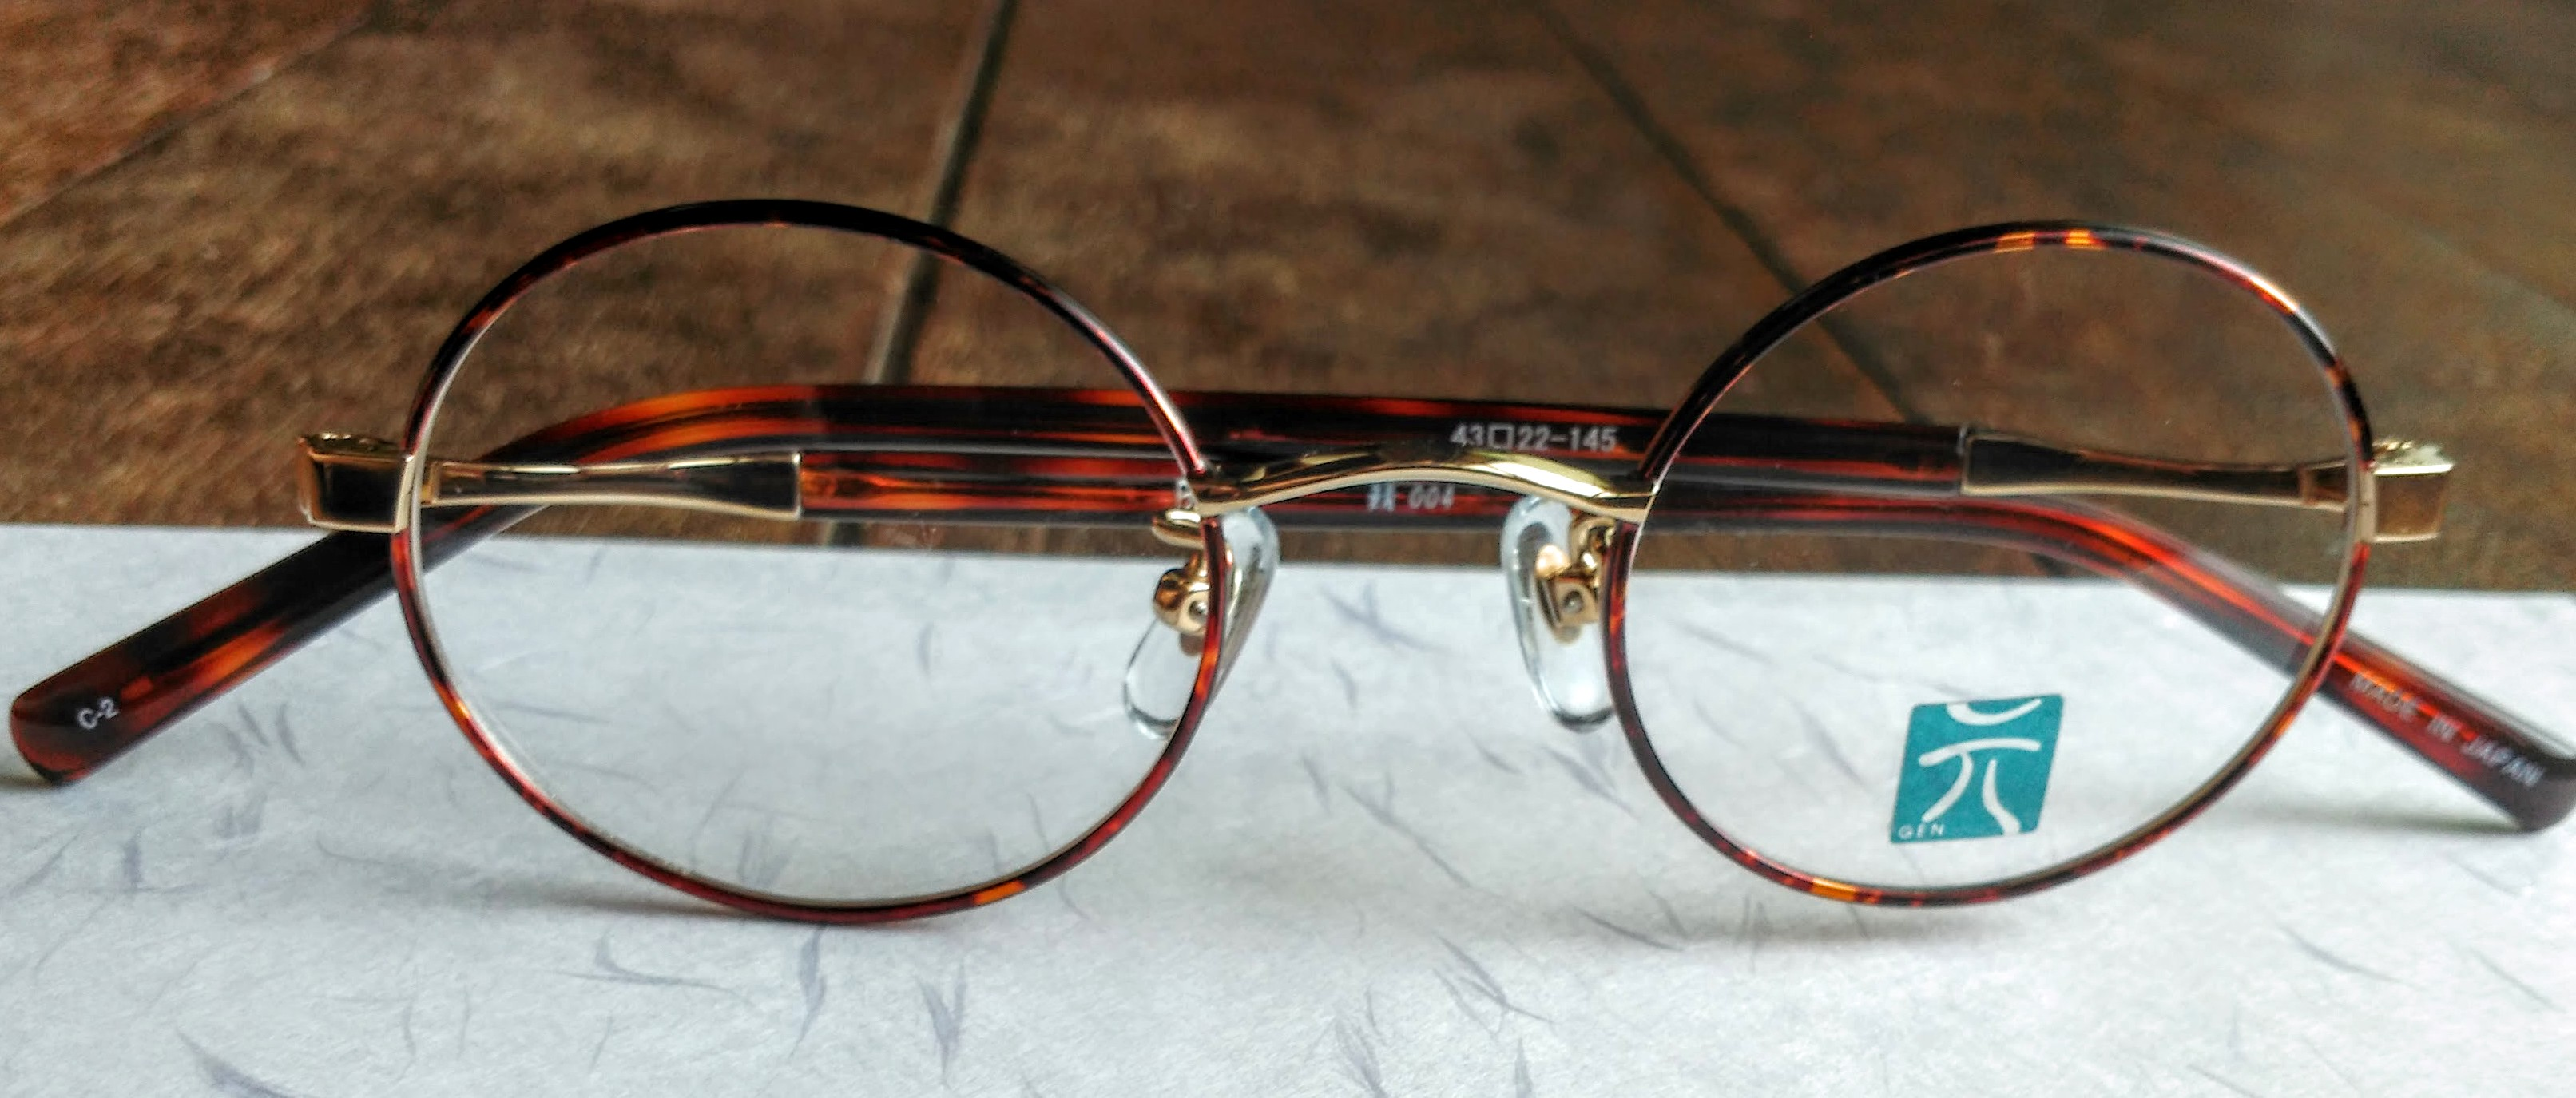 Handmade Japanese Glasses Frame: Titanium Frame Covered in Colored Acetate Wrapping